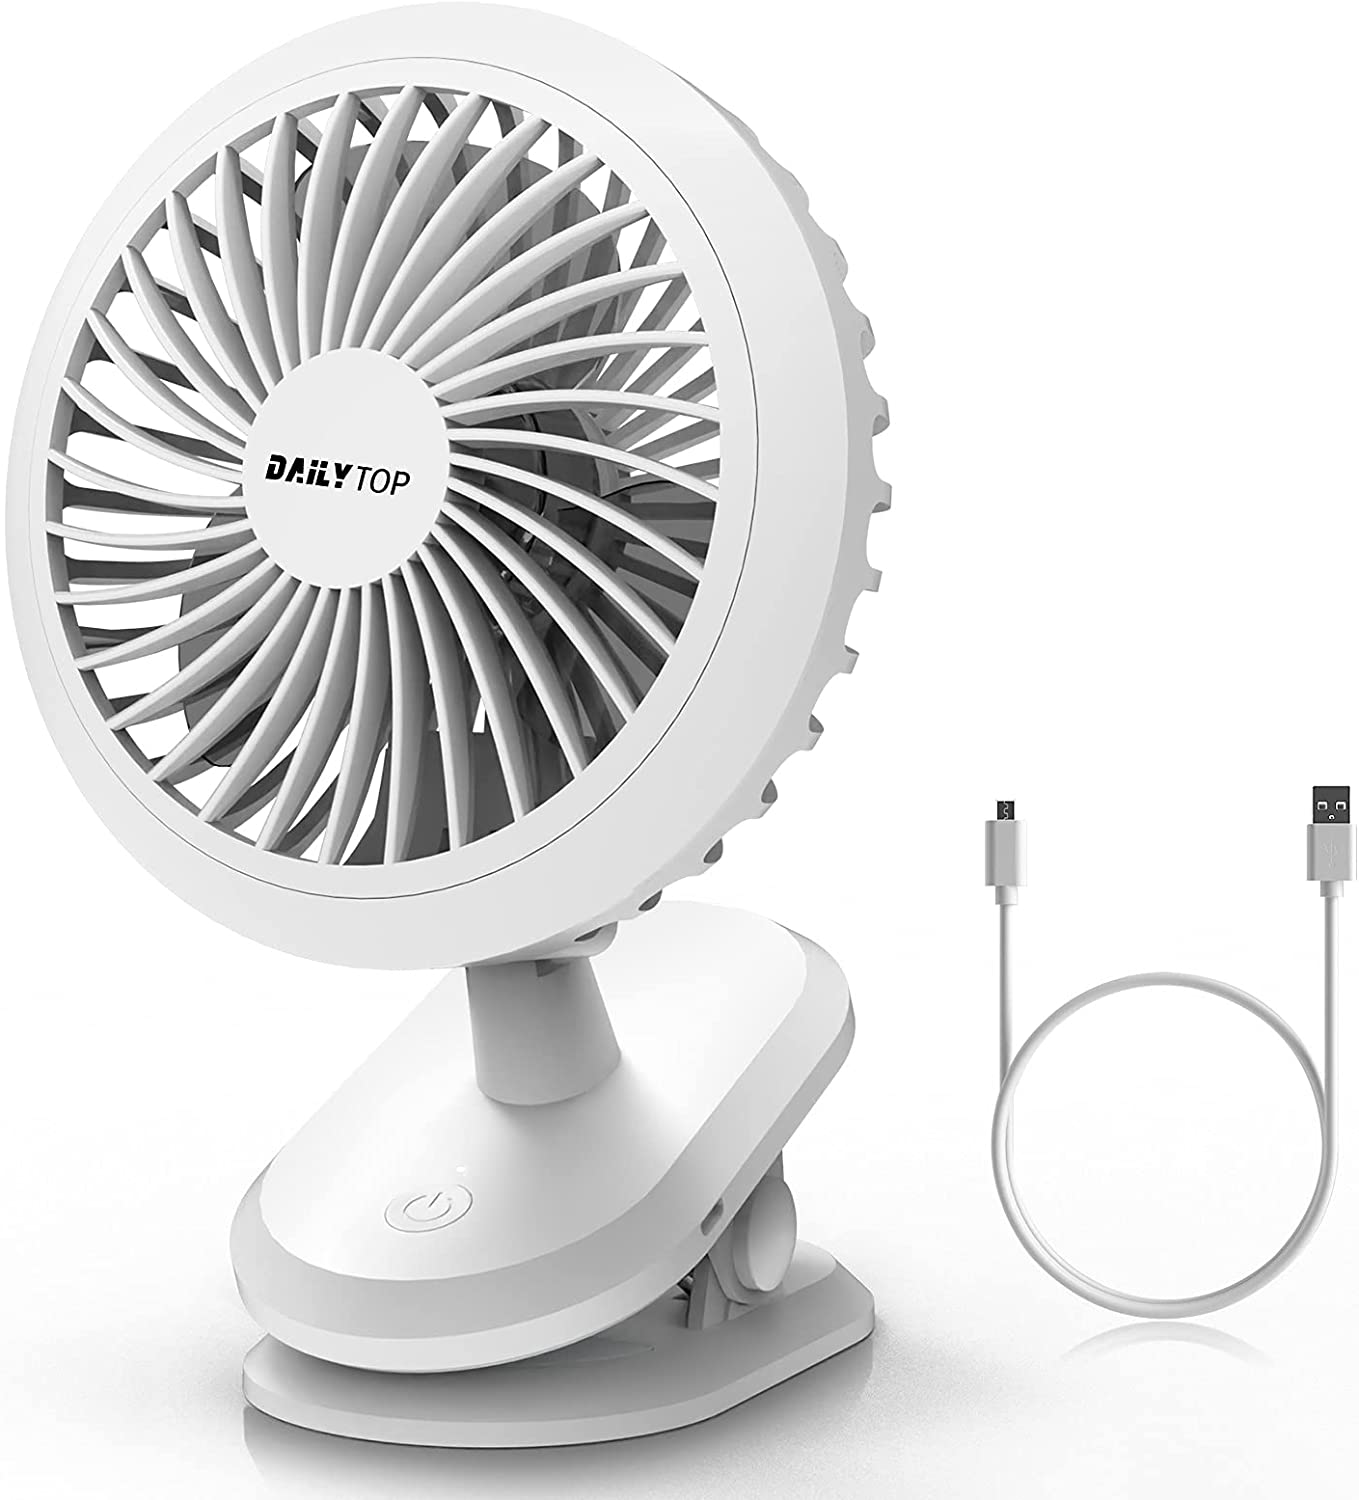 Dailytop Clip on Fan, Portable Fan Rechargeable,Battery Operated Desk Fan,360 Degree Rotation and 3 Speeds Fast Air Circulating USB Fan, 6-Inch ,Endurance 9 hours,Sturdy Clamp for Stroller,Tent or Indoor Gym Treadmill ,Personal Office Desk